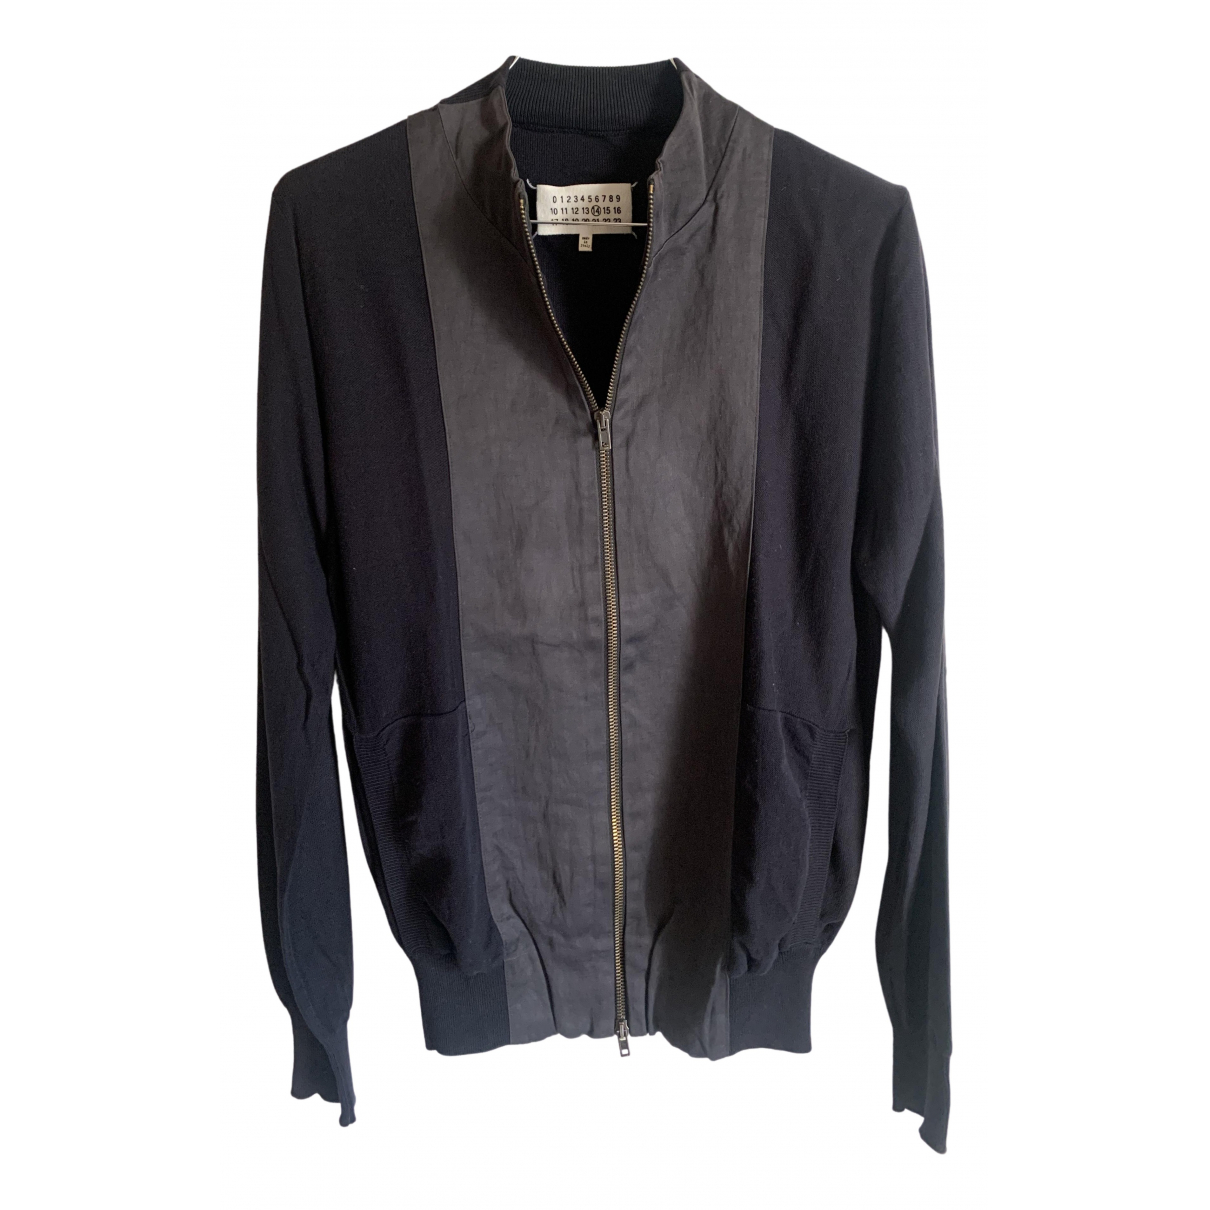 Maison Martin Margiela \N Navy Cotton jacket  for Men S International